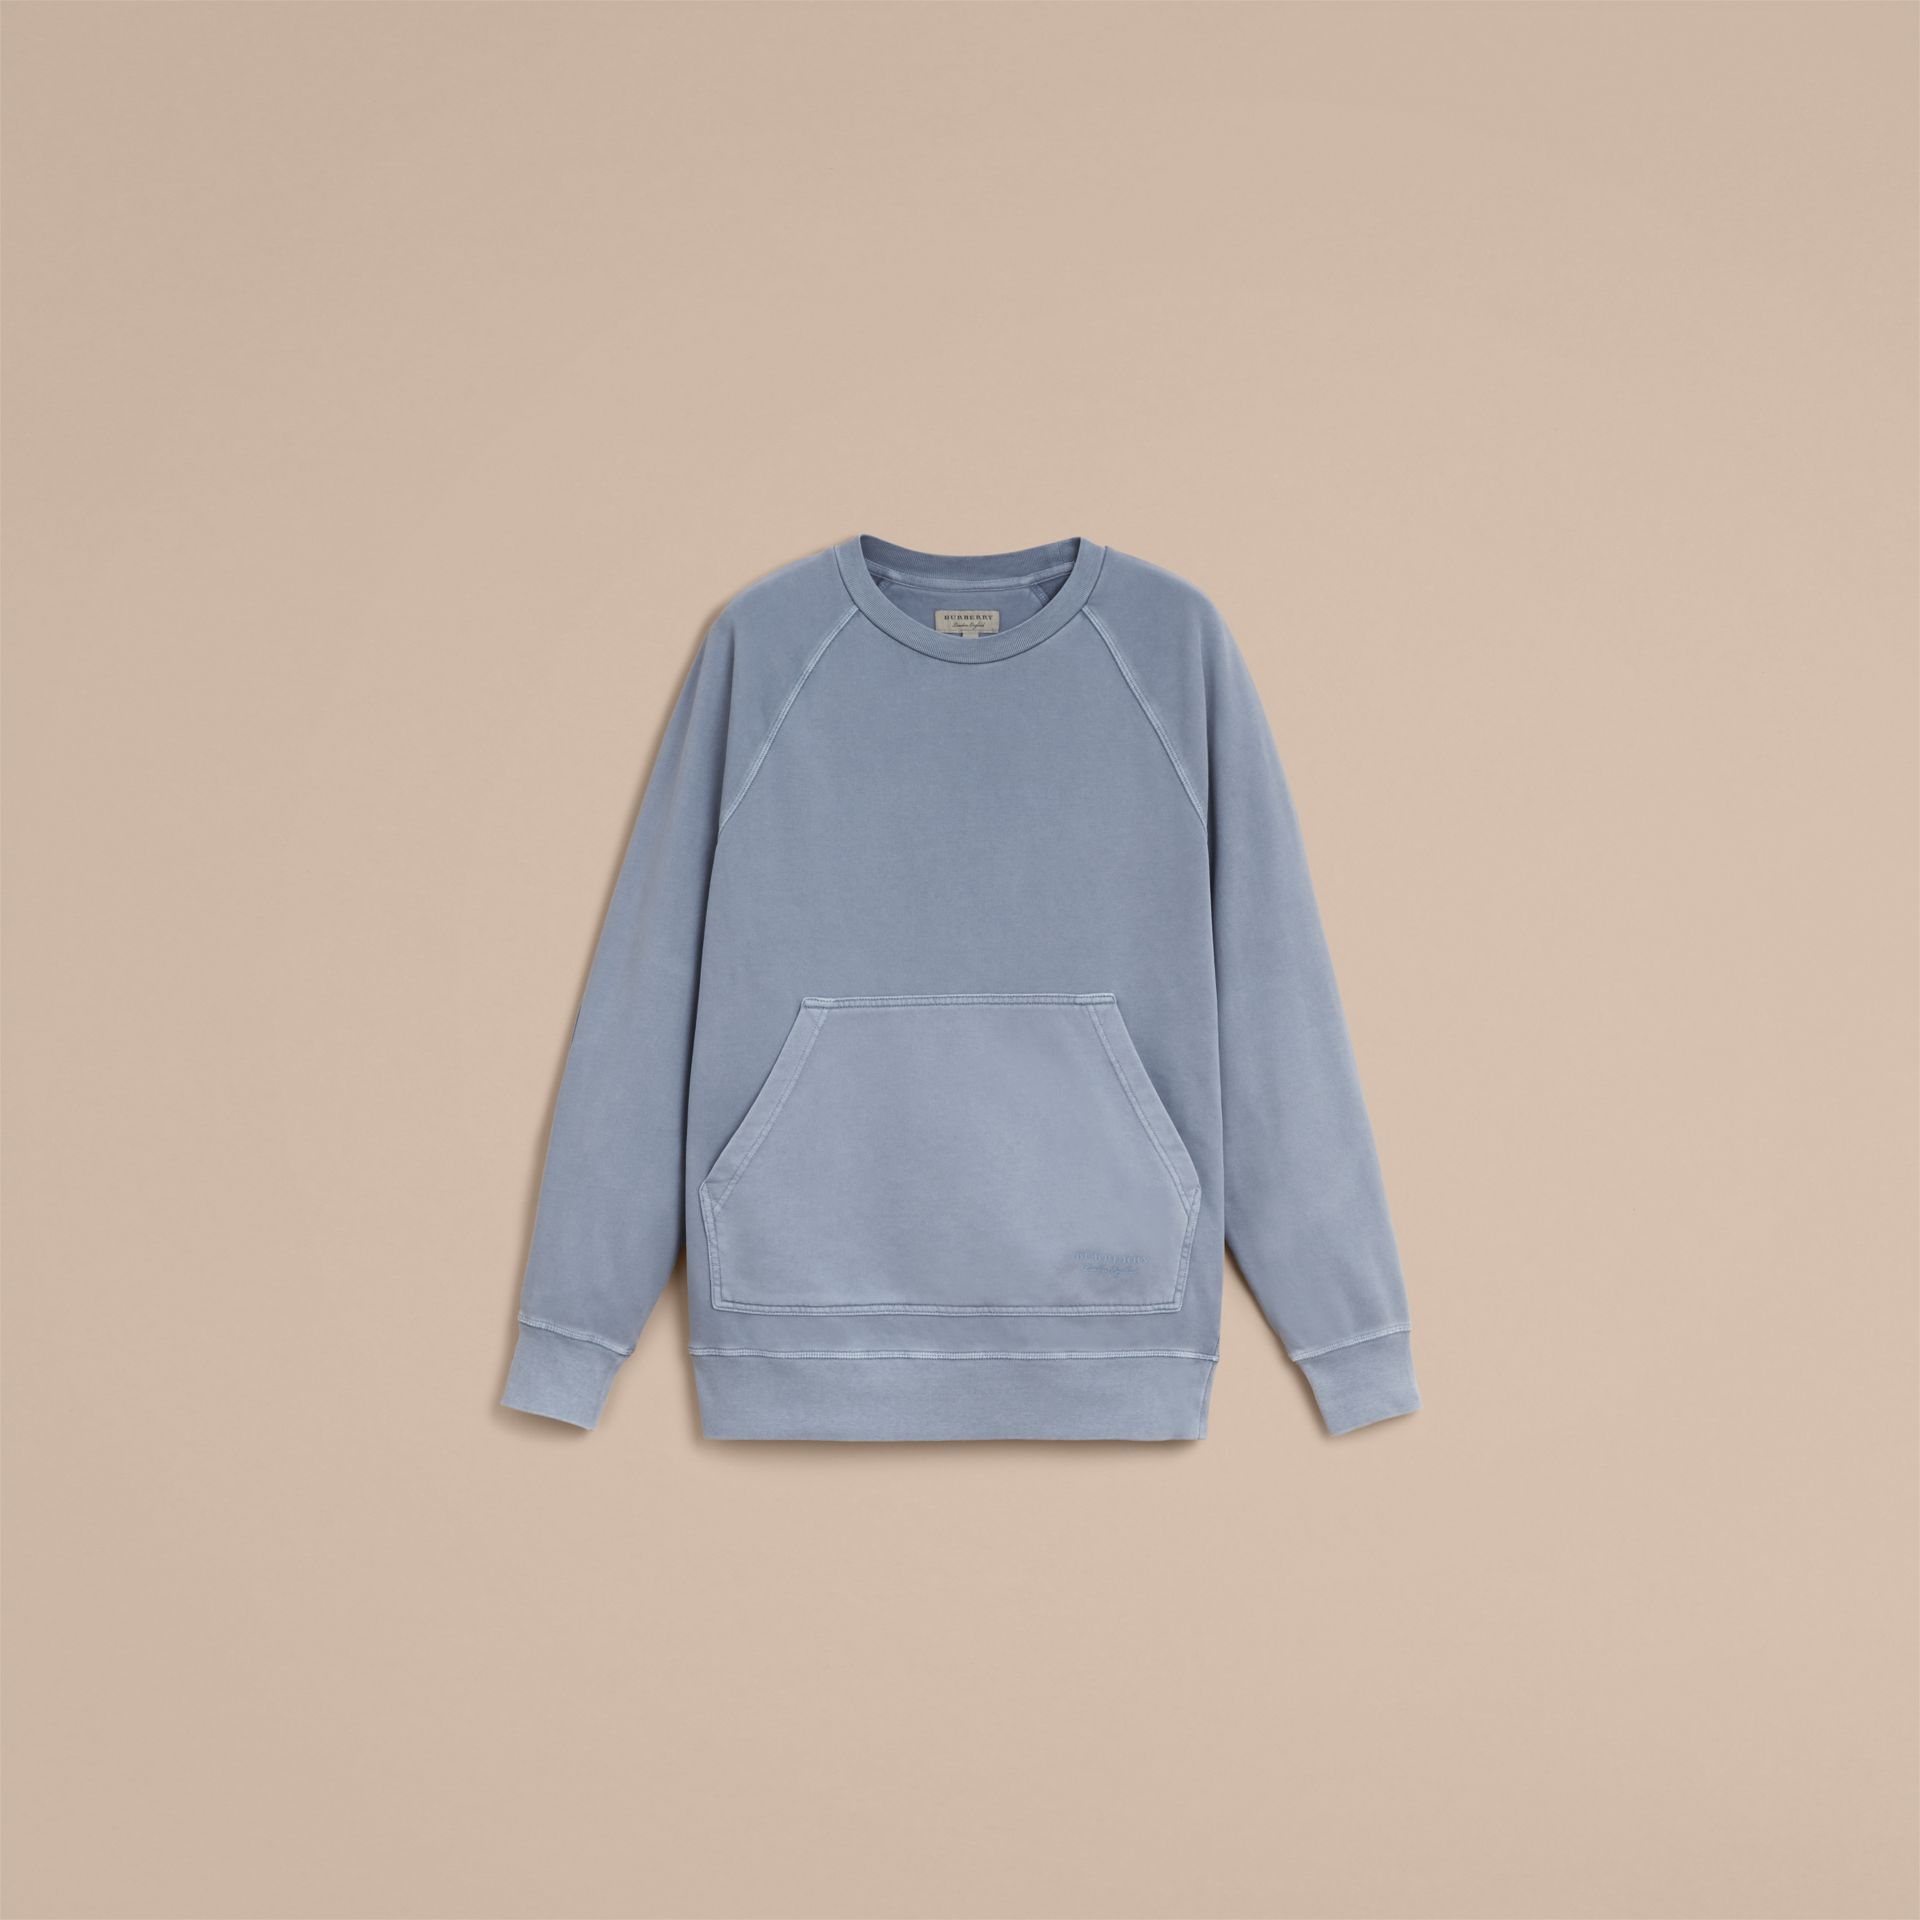 Unisex Pigment-dyed Cotton Oversize Sweatshirt in Dusty Blue - Women | Burberry - gallery image 3